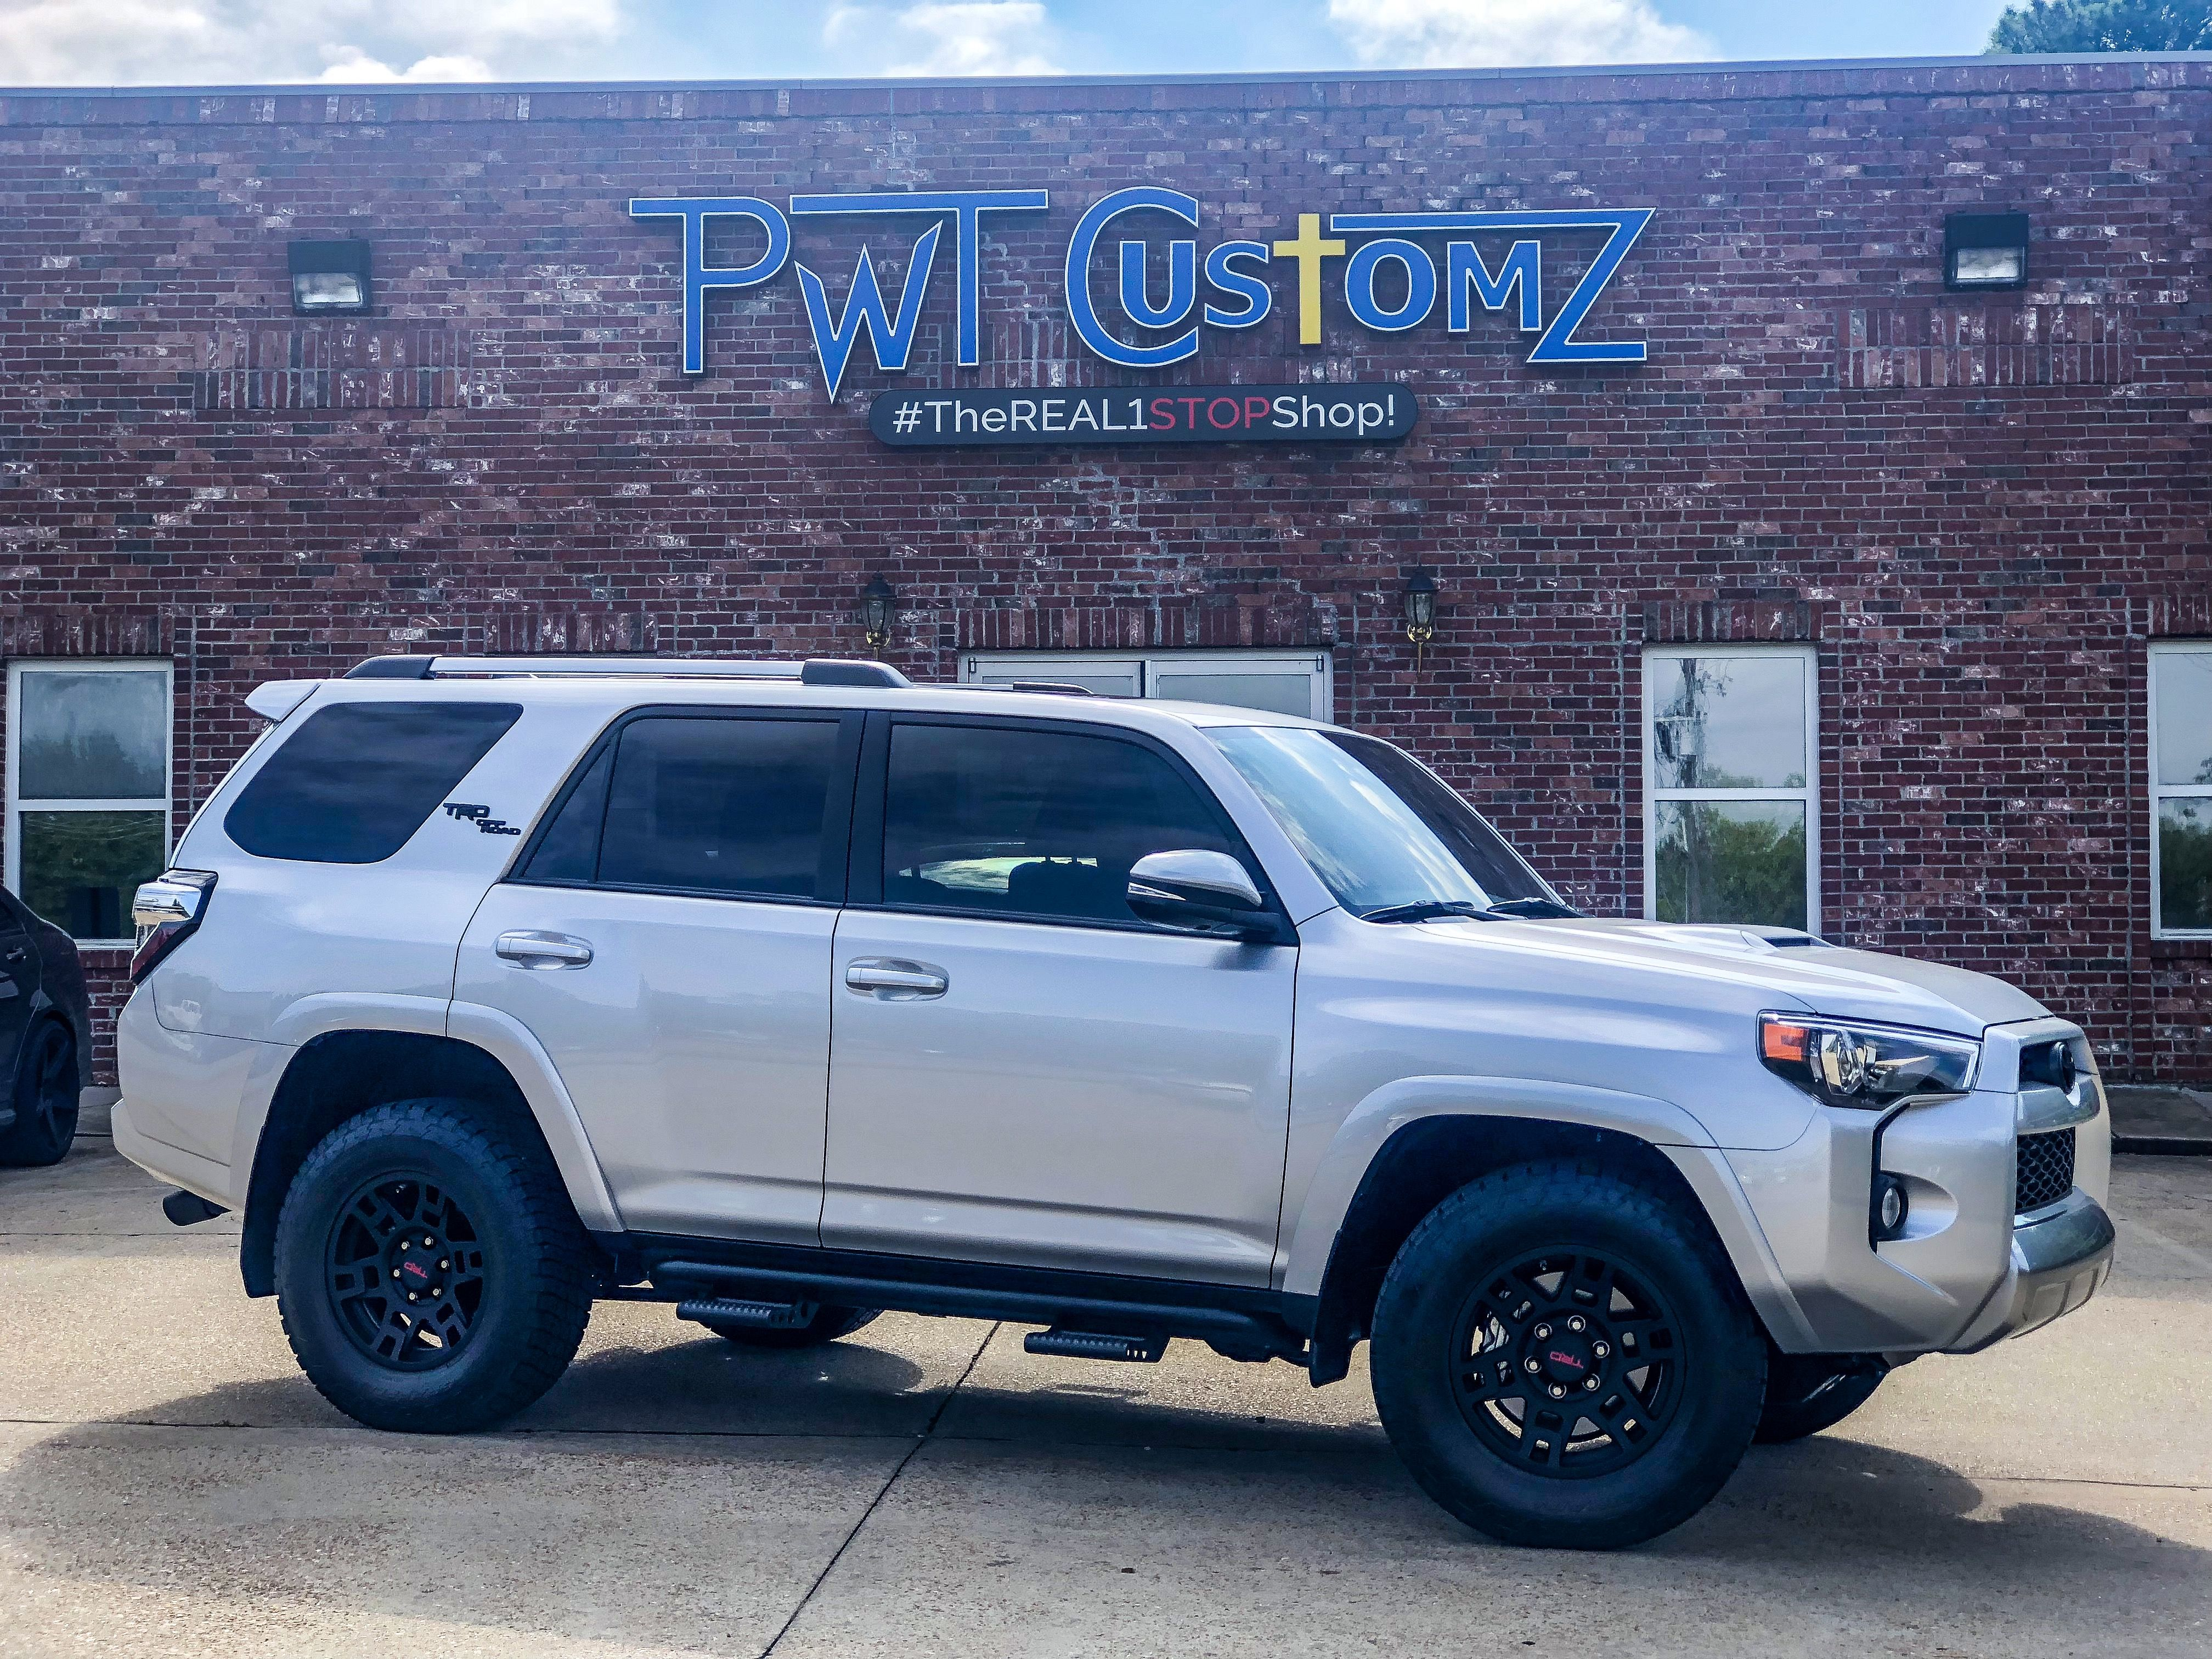 Pwtint Tinted Windows Ridgeland Ms Toyota 4runner